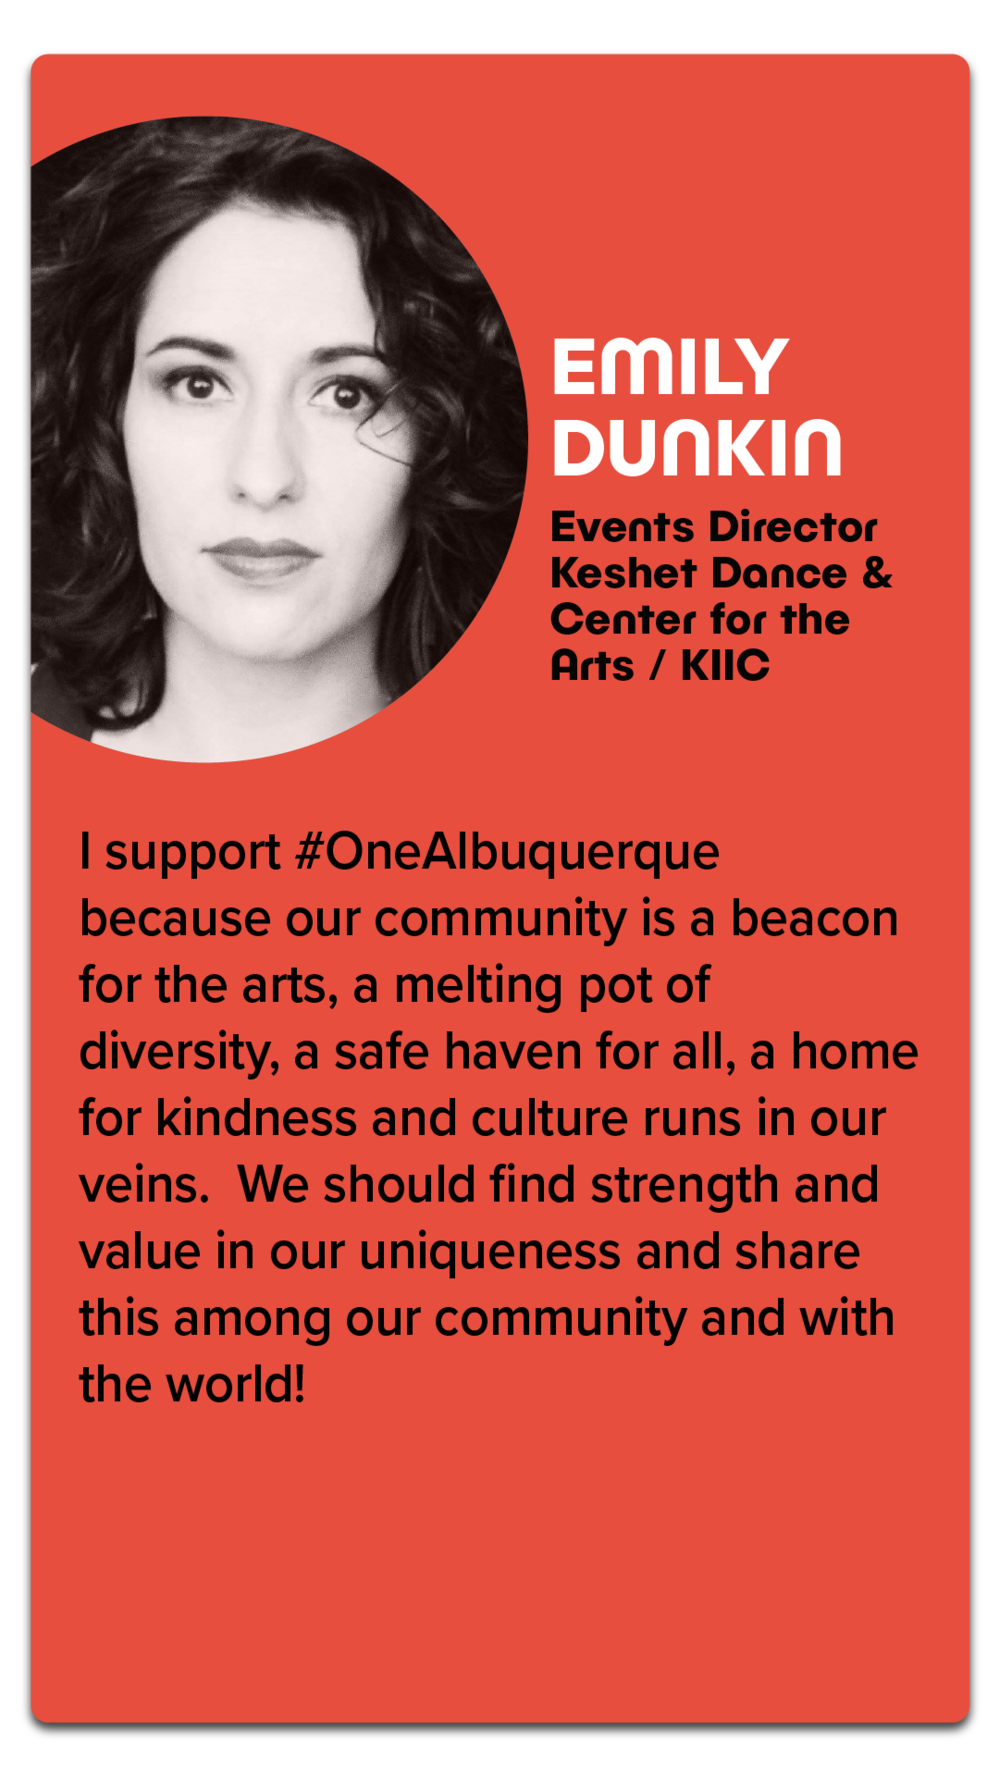 "Emily Dunkin, Events Director, Keshet Dance & Center for the Arts / KIIC  ""I support #OneAlbuquerque because our community is a beacon for the arts, a melting pot of diversity, a safe haven for all, a home for kindness and culture runs in our veins. We should find strength and value in our uniqueness and share this amount our community and with the world!"""